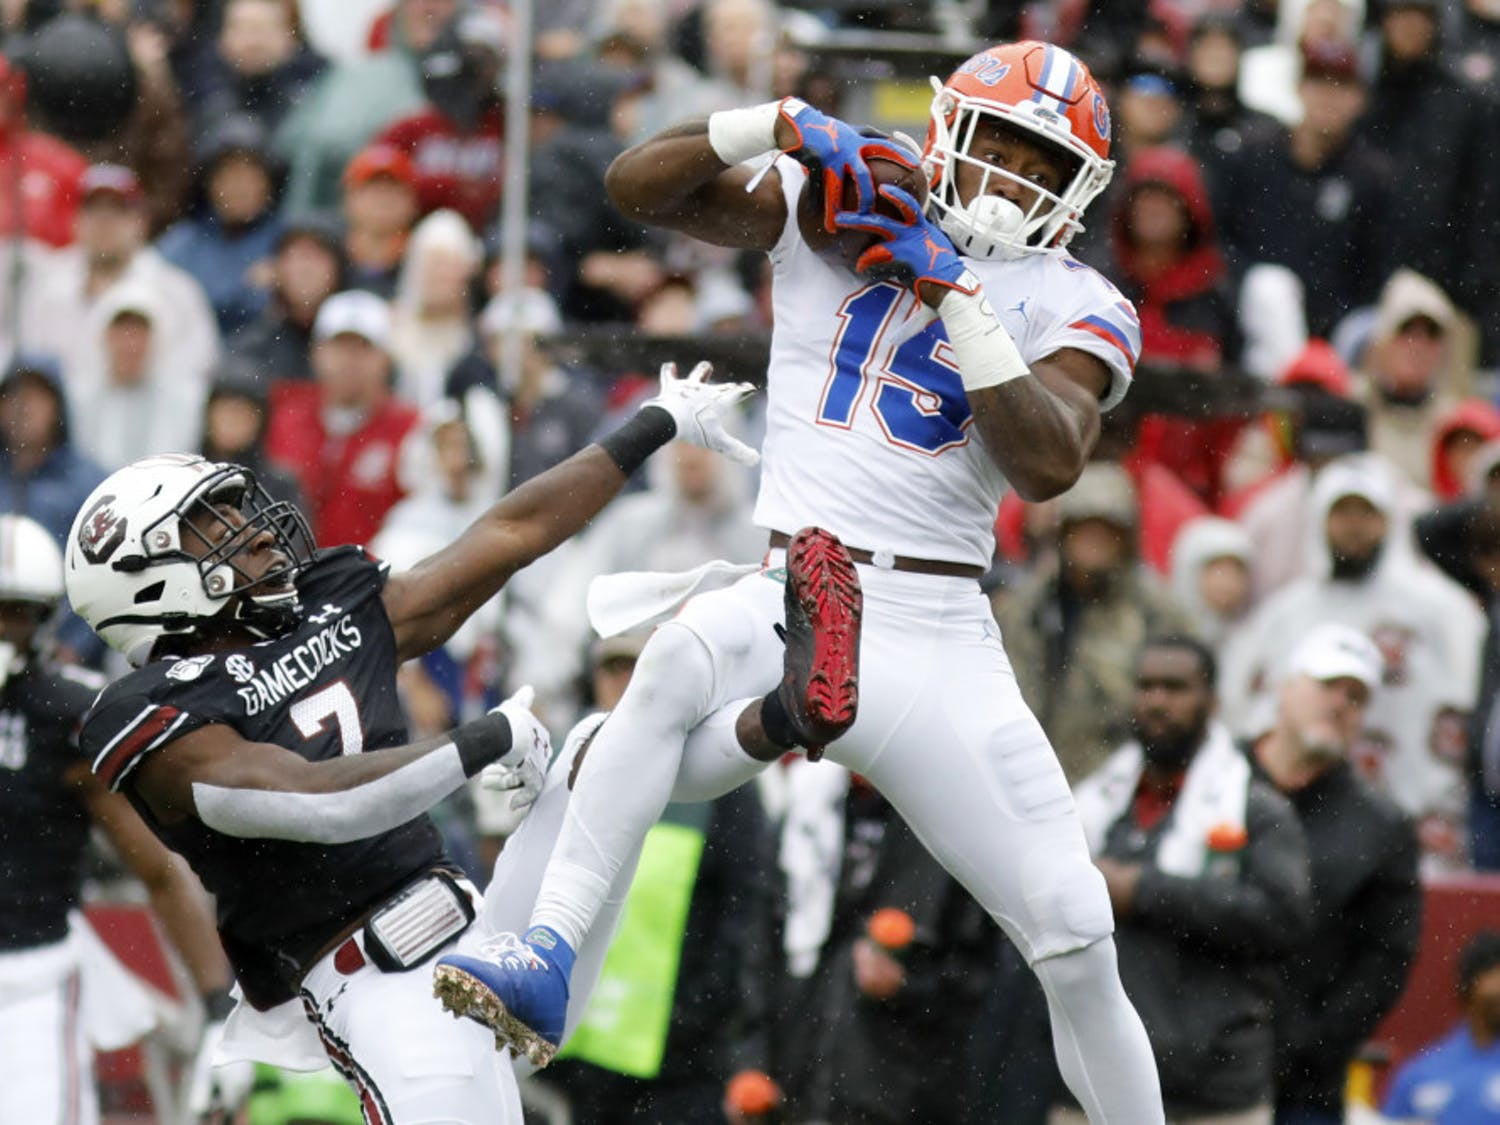 Florida's Jacob Copeland (15) catches a pass for a touchdown as South Carolina's Jammie Robinson (7) defends in the first half of an NCAA college football game Saturday, Oct. 19, 2019, in Columbia, SC.